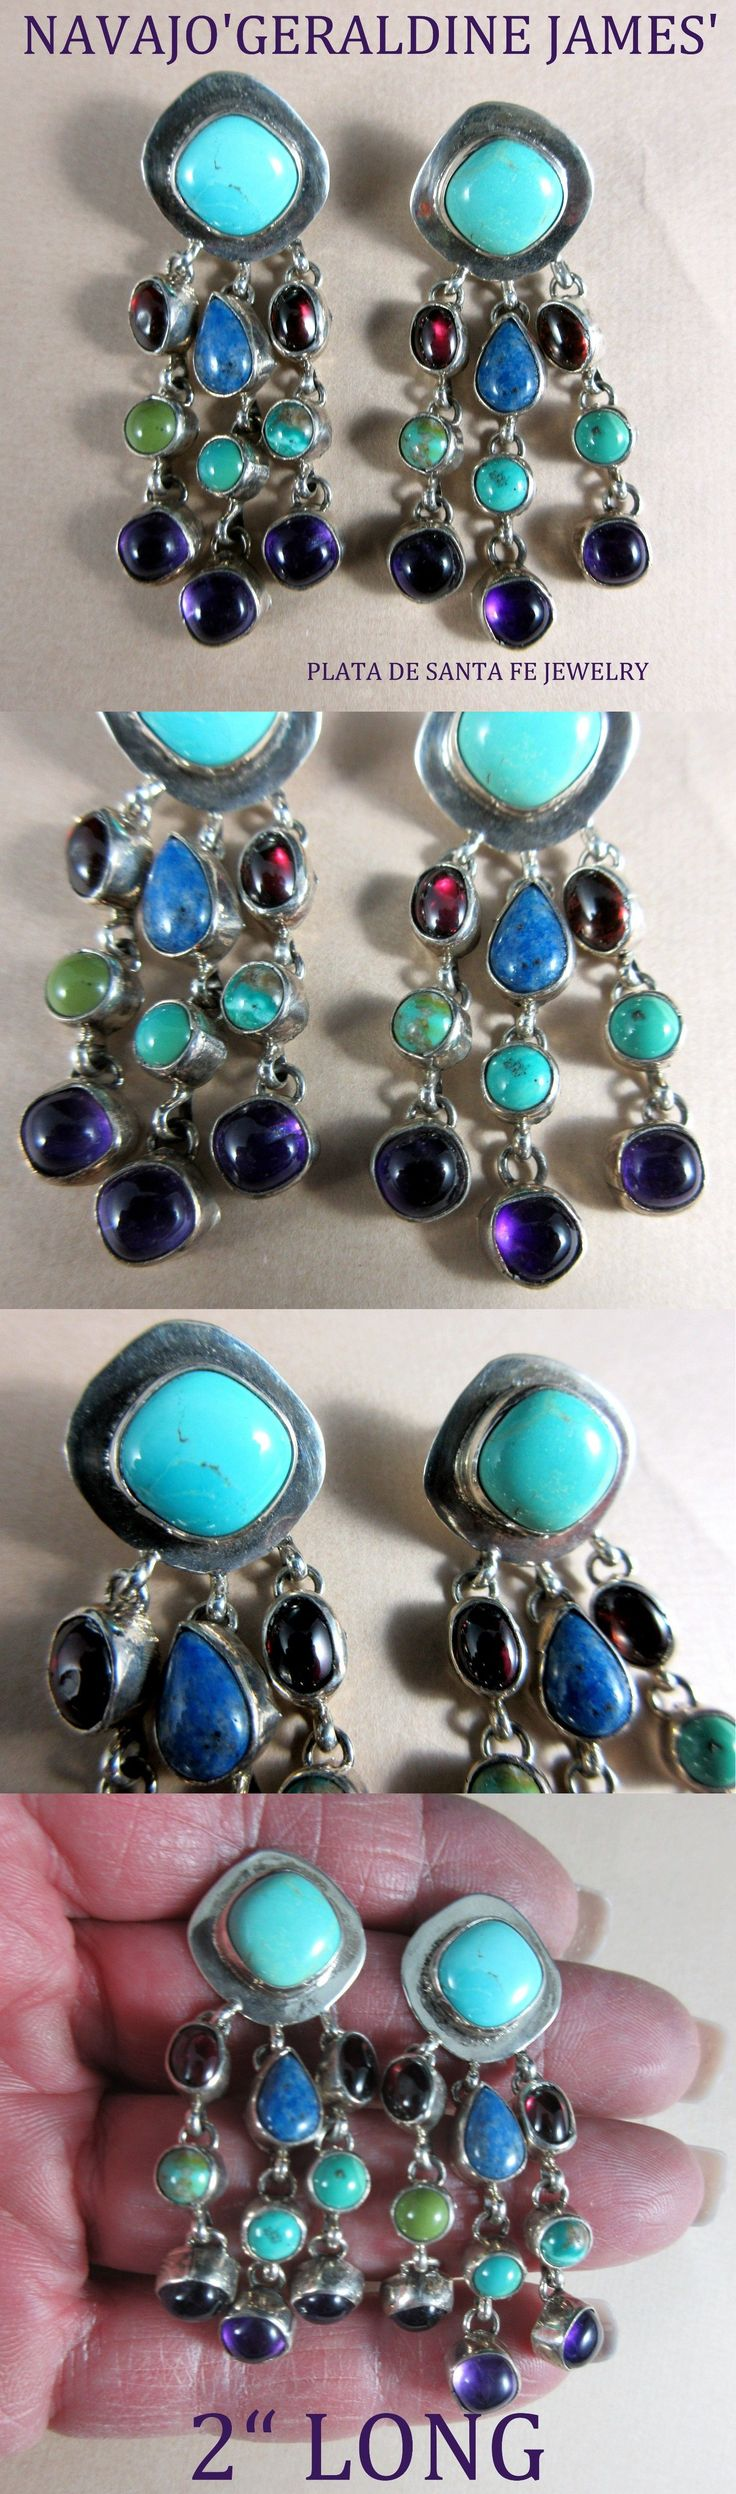 Earrings 98497: Navajo~Geraldine James~Turquoise~Semi Precious~Contemporary~925 Earrings -> BUY IT NOW ONLY: $195 on eBay!